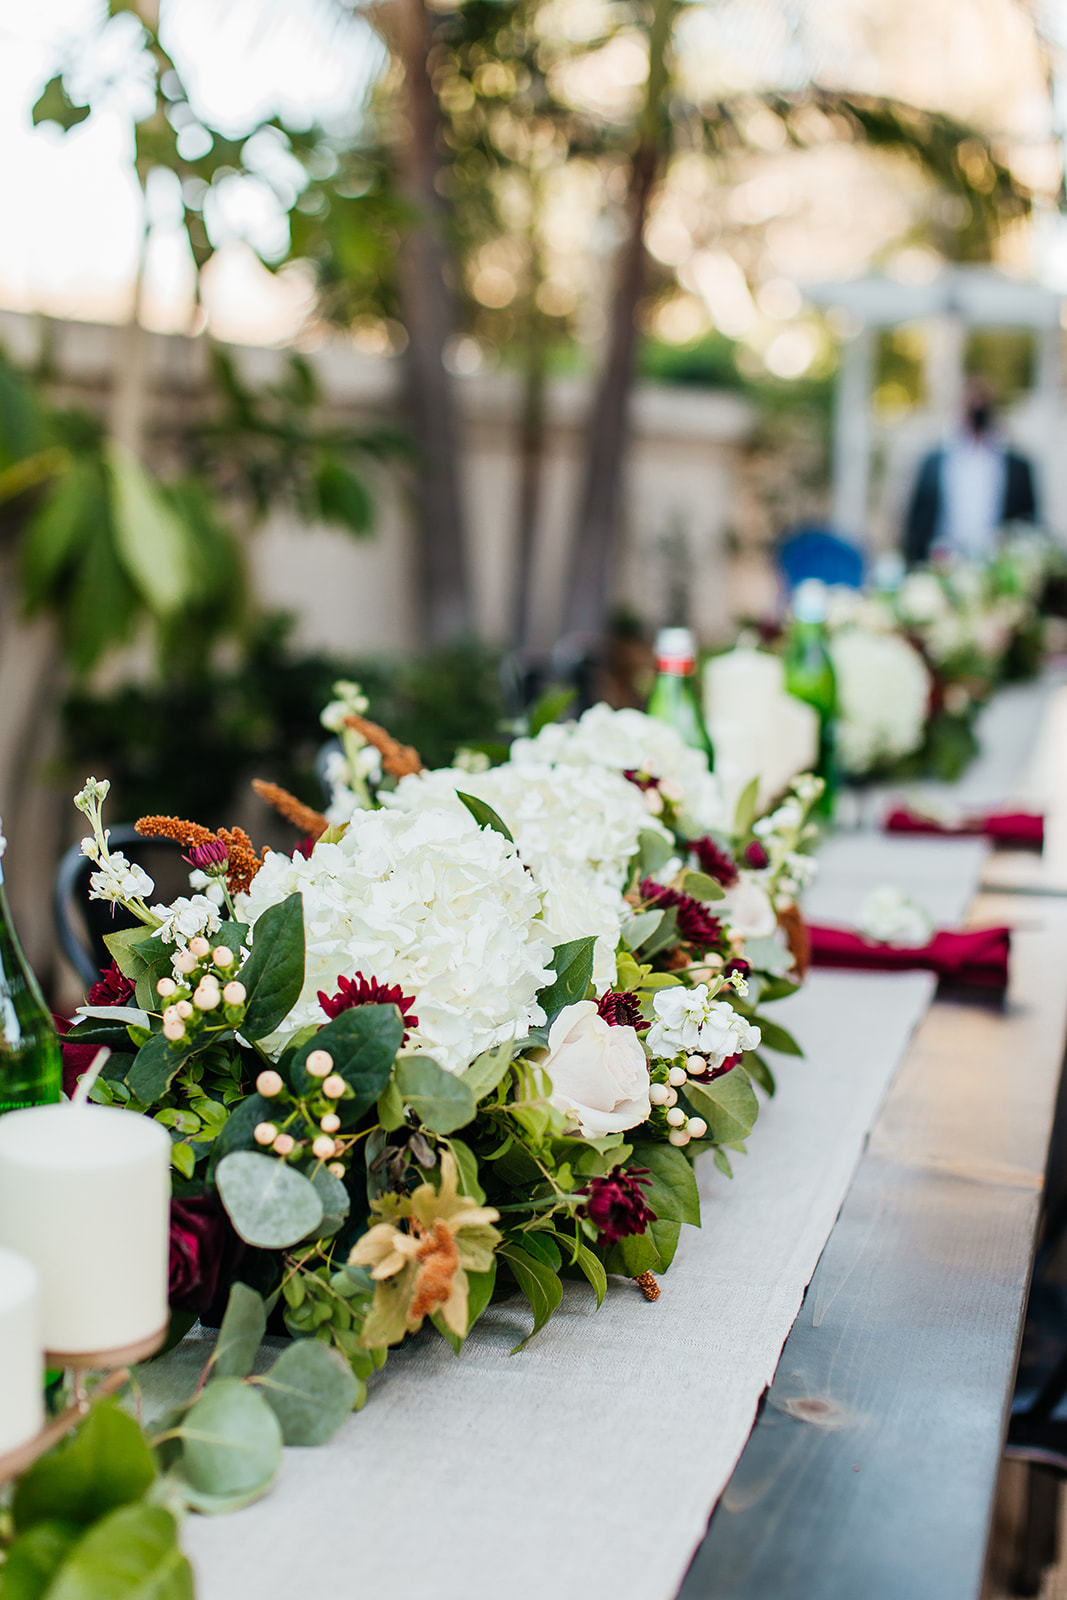 White and green wedding floral centerpieces